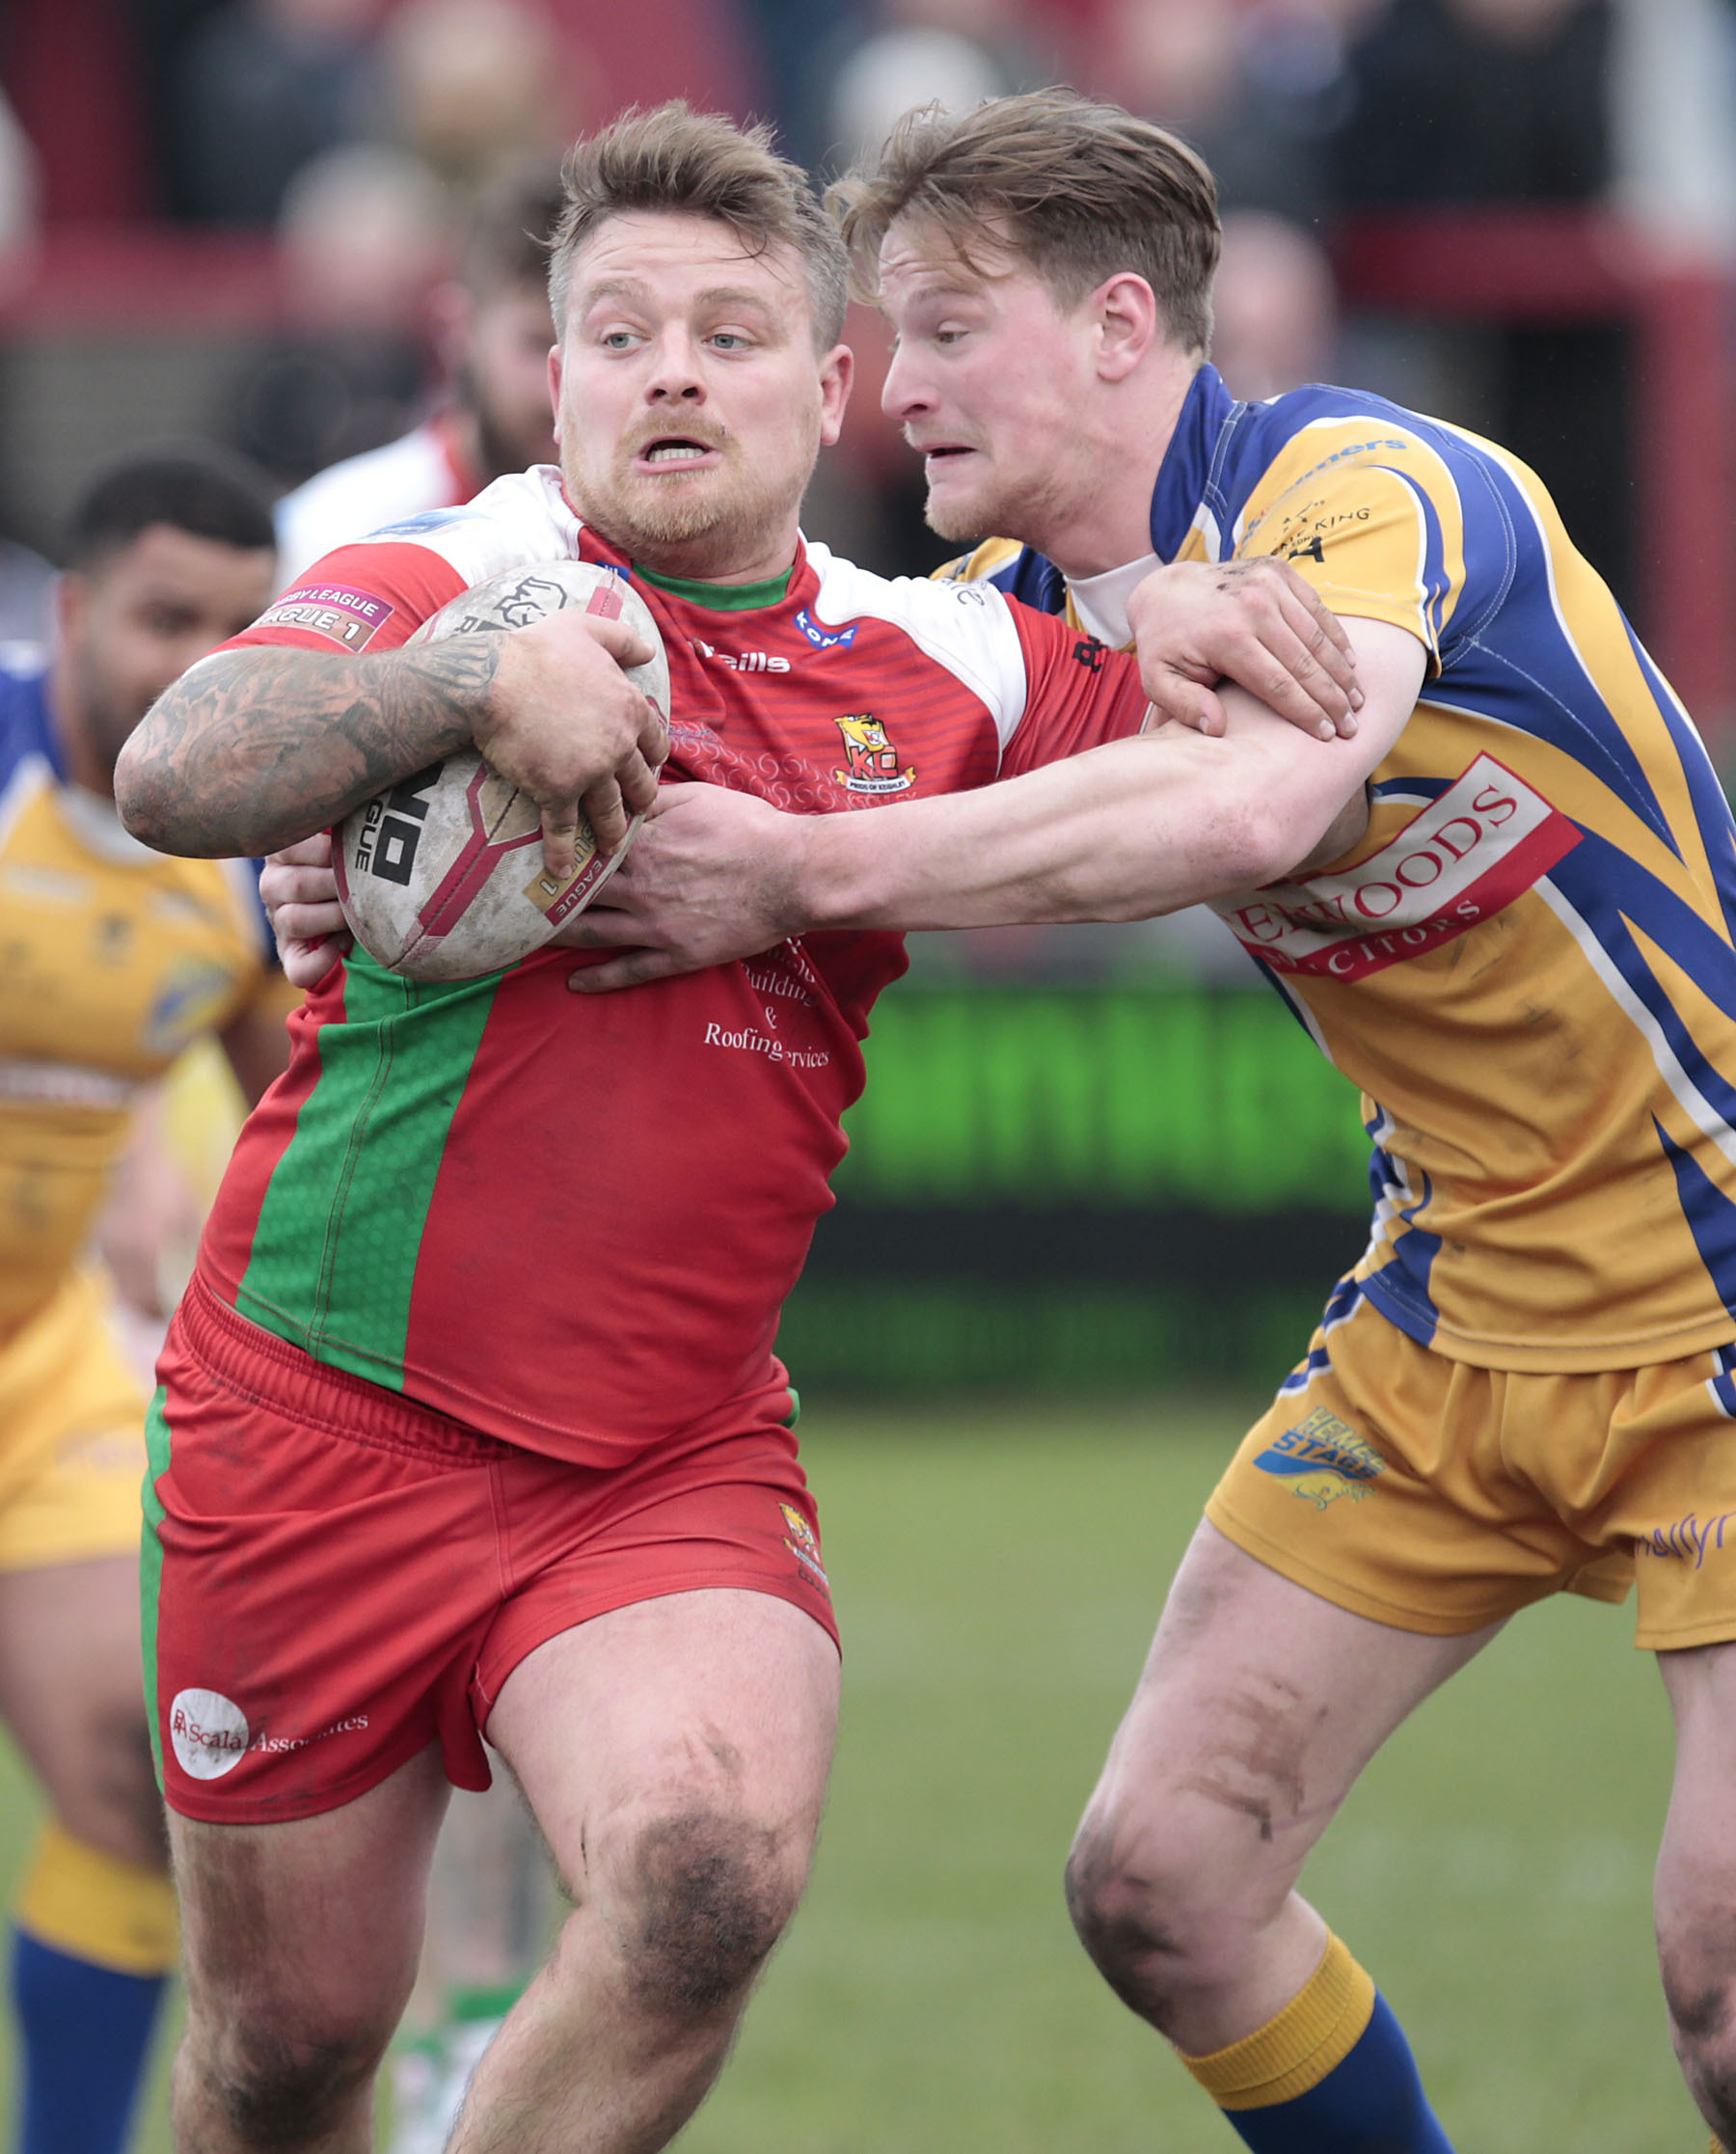 Keighley Cougars' Mike Emmett tries to fend off a Hemel Stags challenge. Picture: Charlie Perry